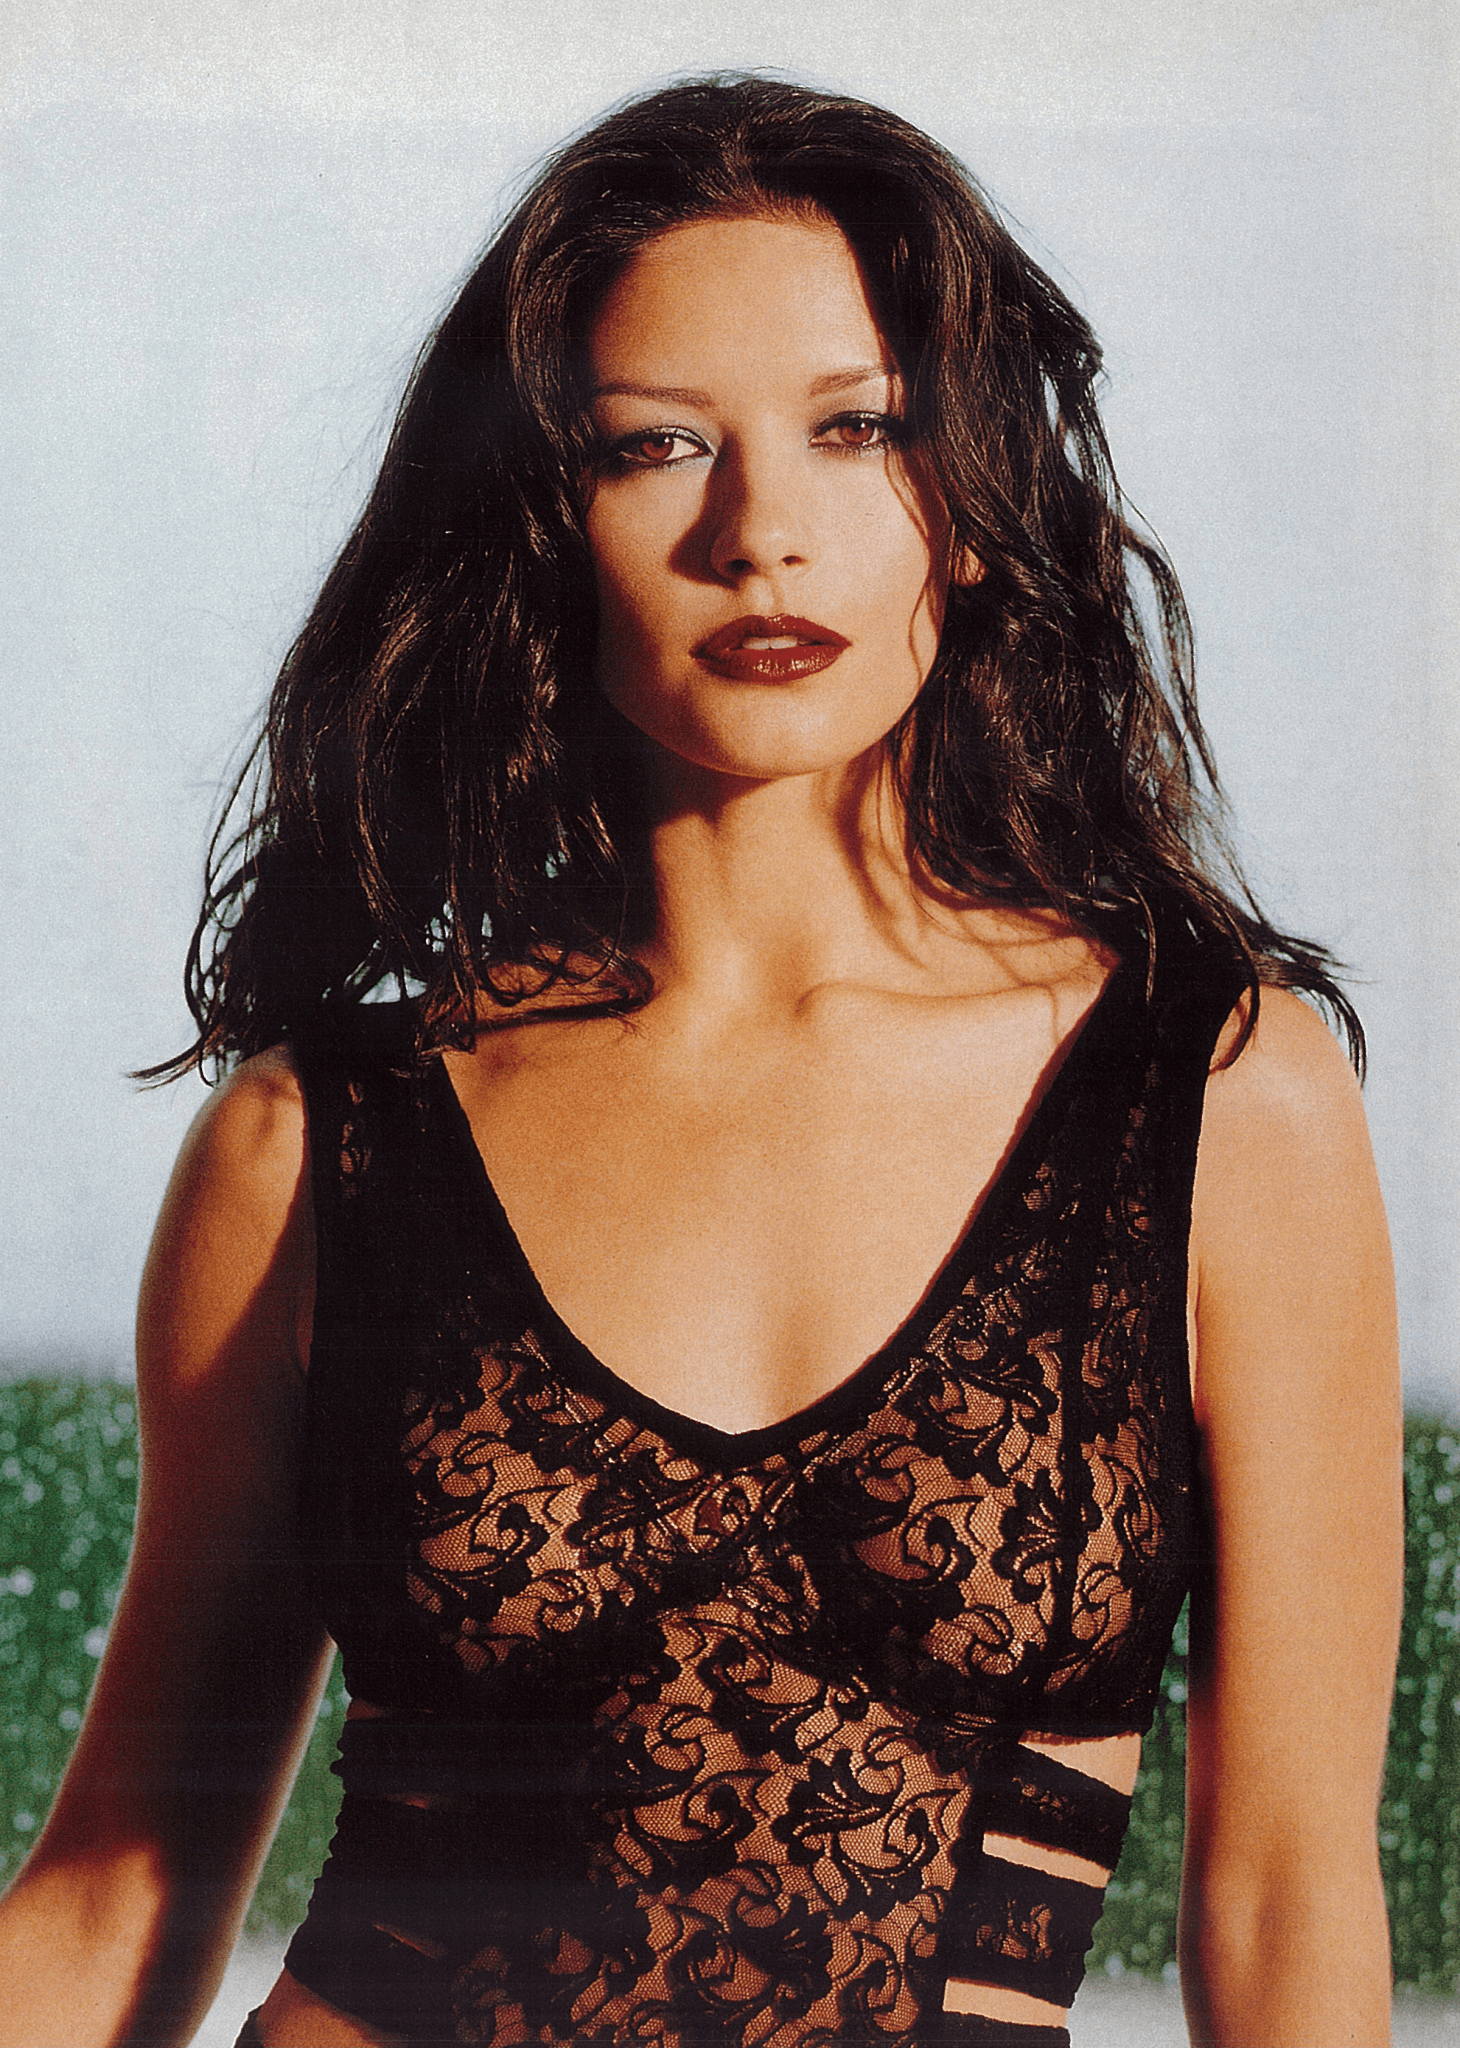 Catherine Zeta-Jones Loaded Shoot